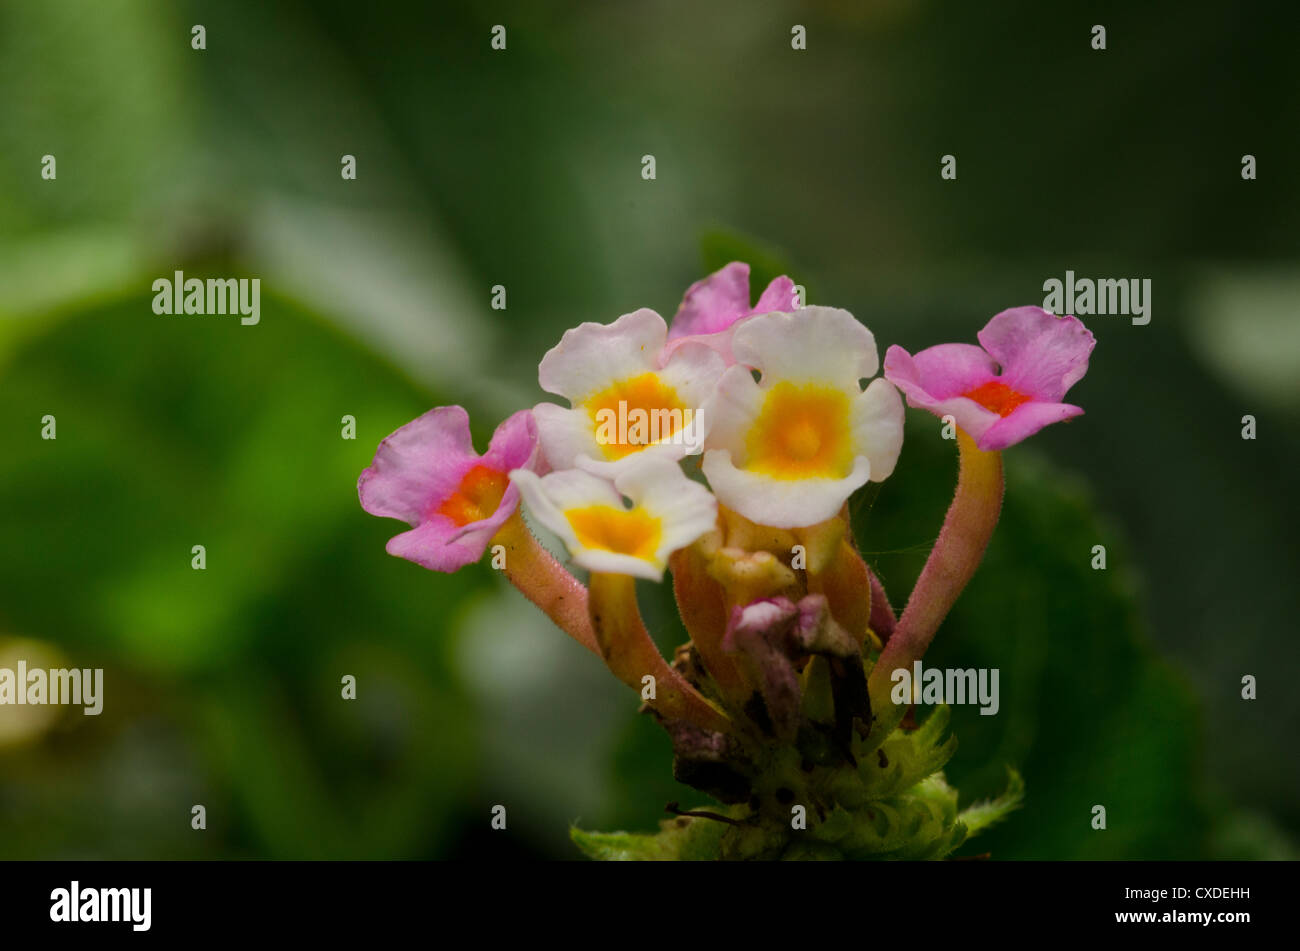 Tiny Pink And White Flowers Stock Photo 50698637 Alamy